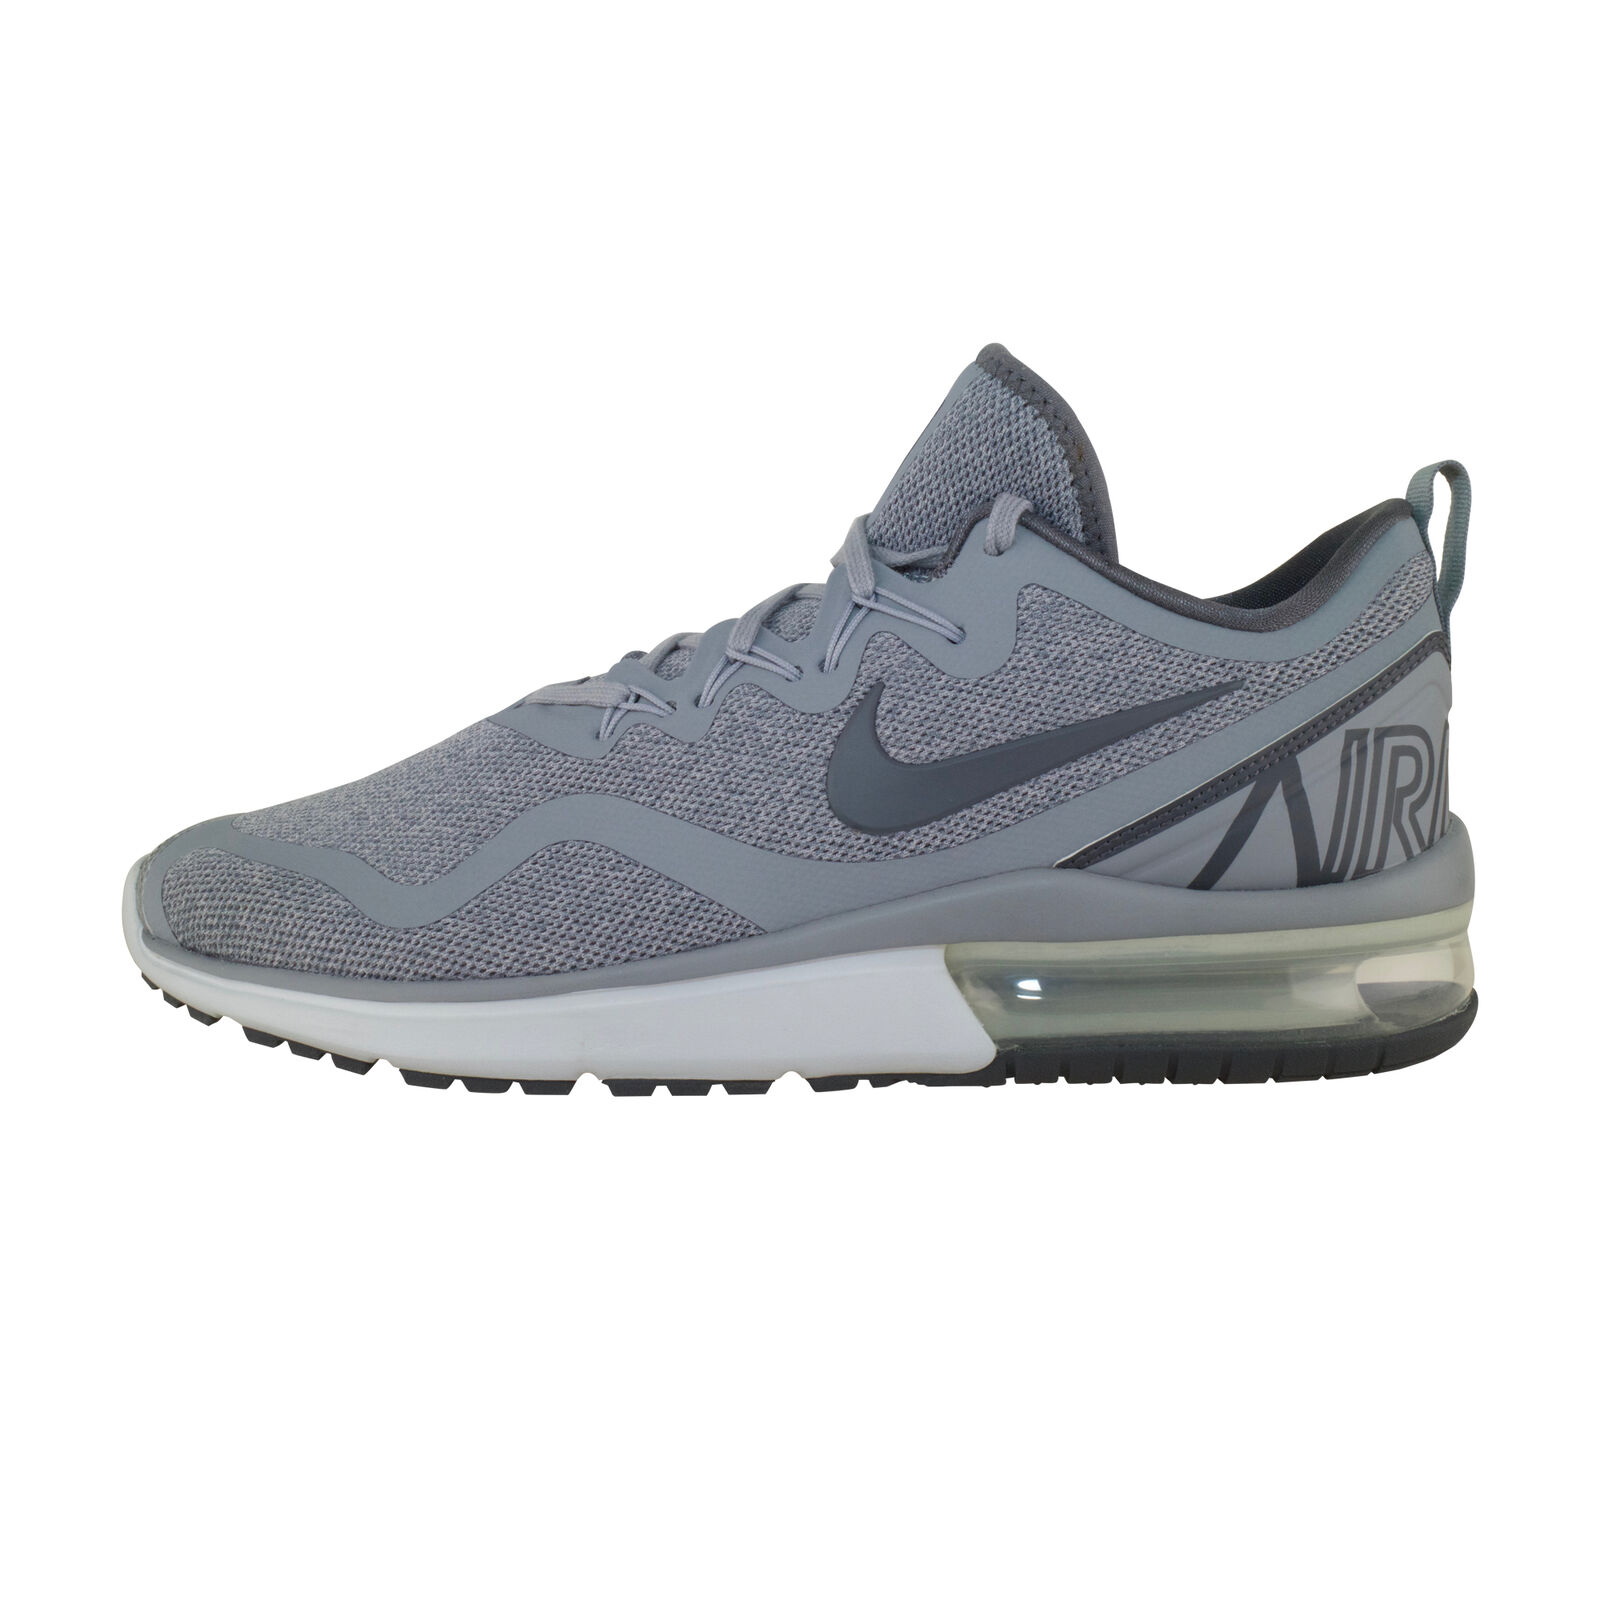 Details about Nike Air Max Fury Grey AA5739 004